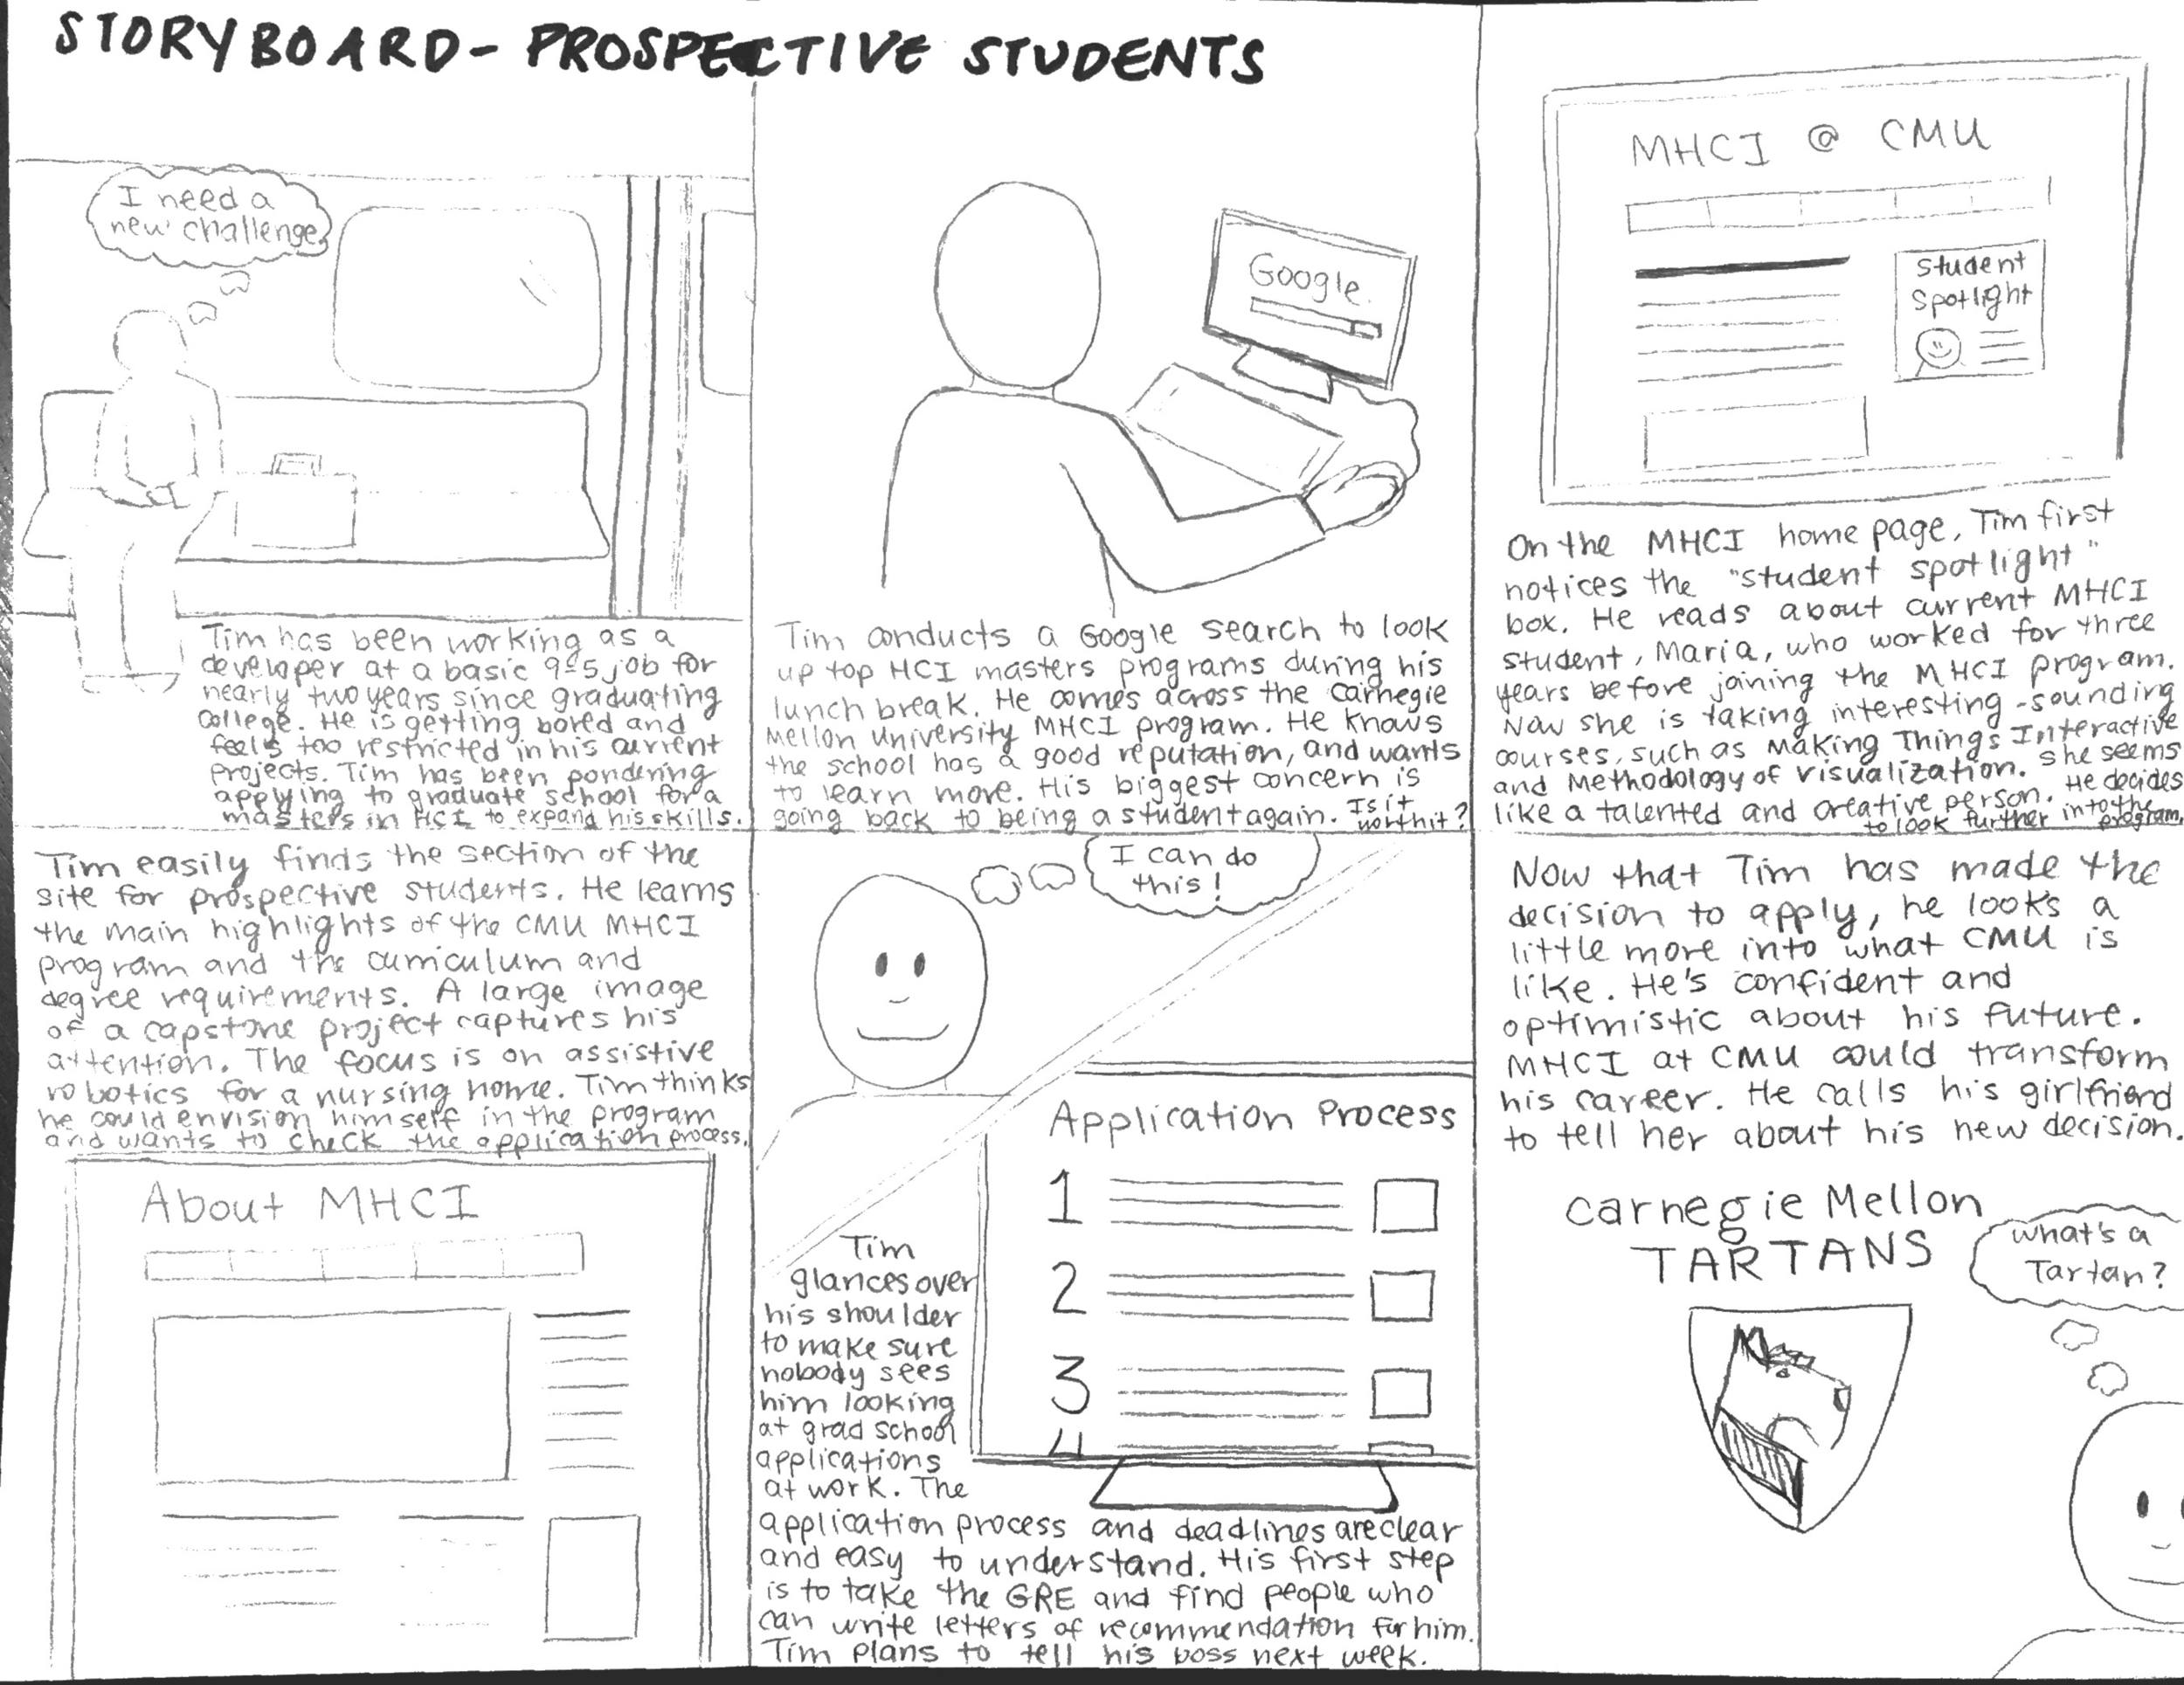 Storyboard - Prospective Student.png